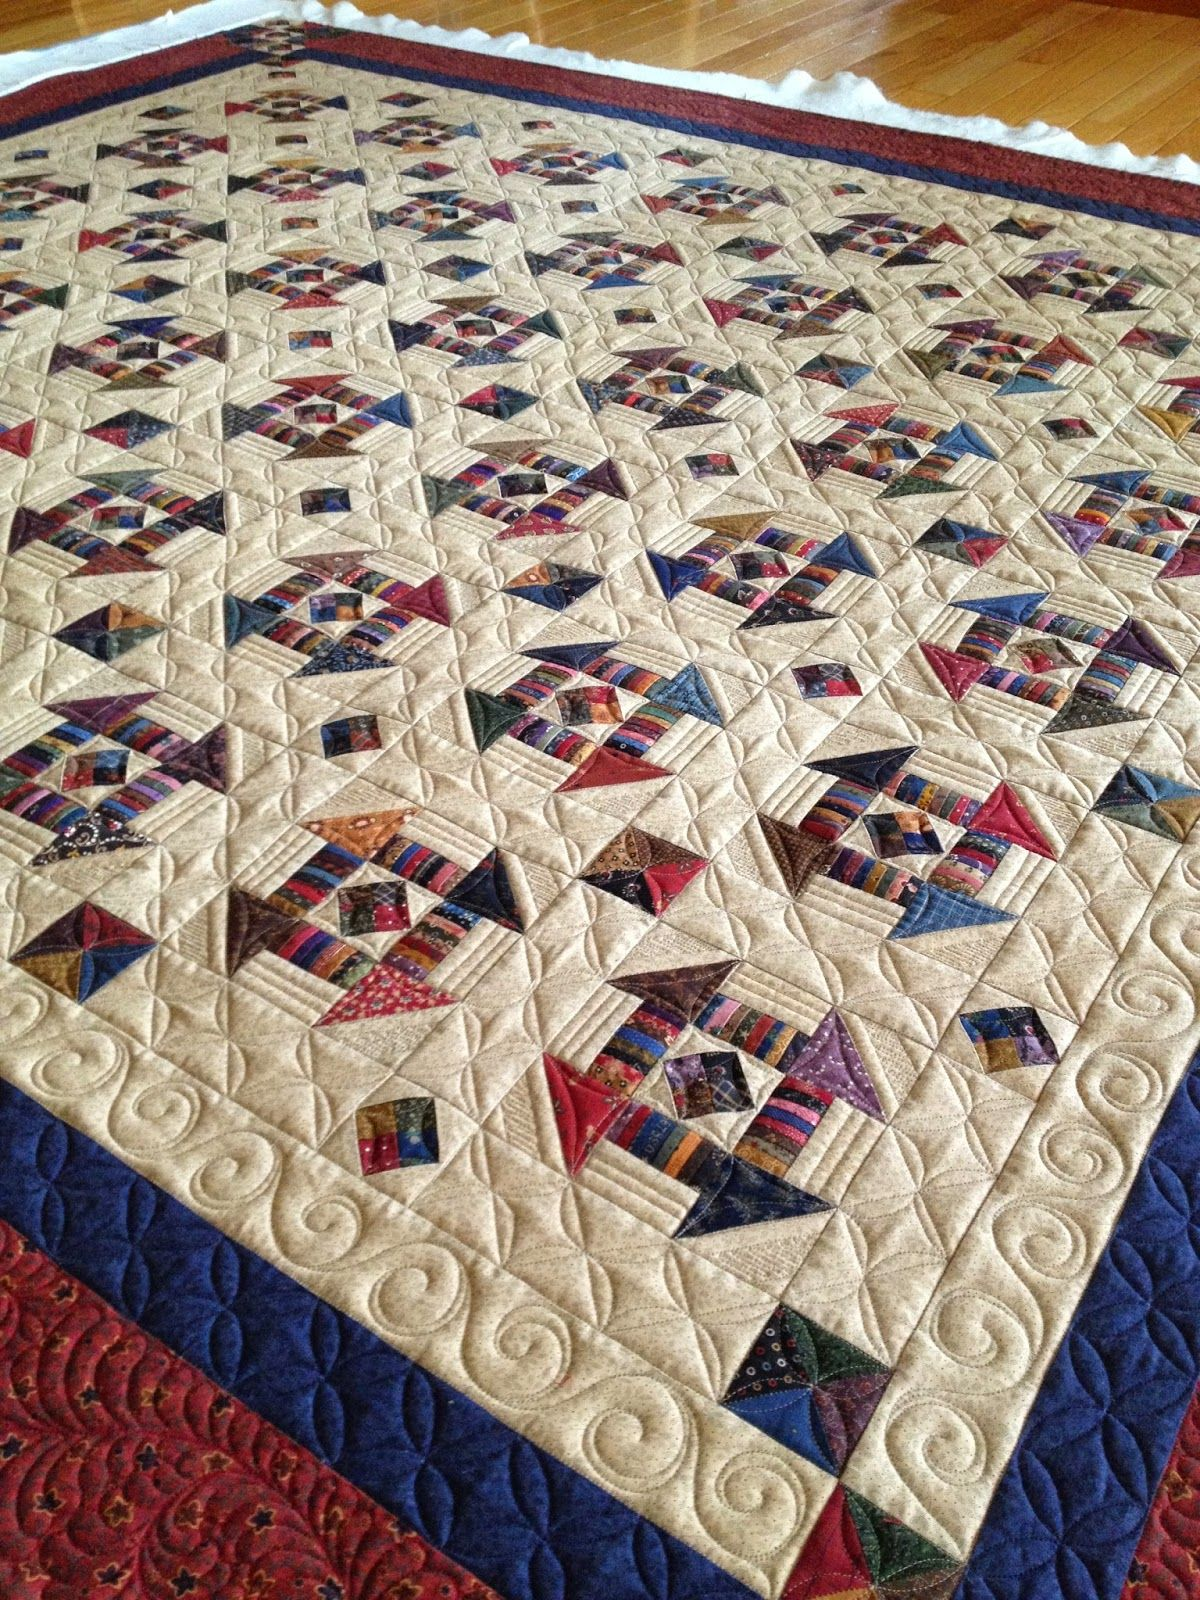 quilt crossings patchwork quilting american pin and star august